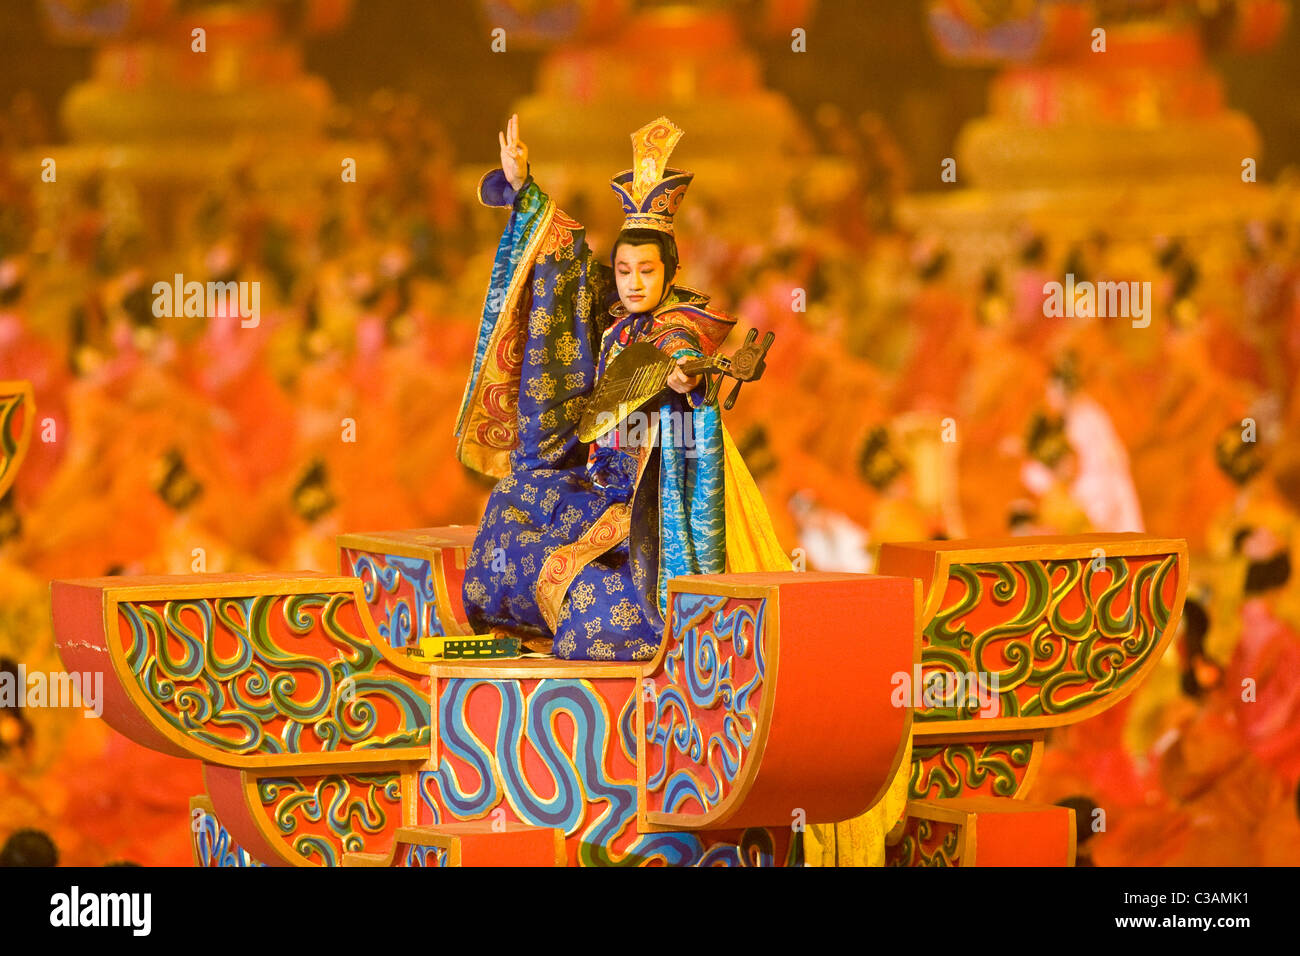 Opening Ceremonies at the 2008 Olympic Summer Games, Beijing, China - Stock Image